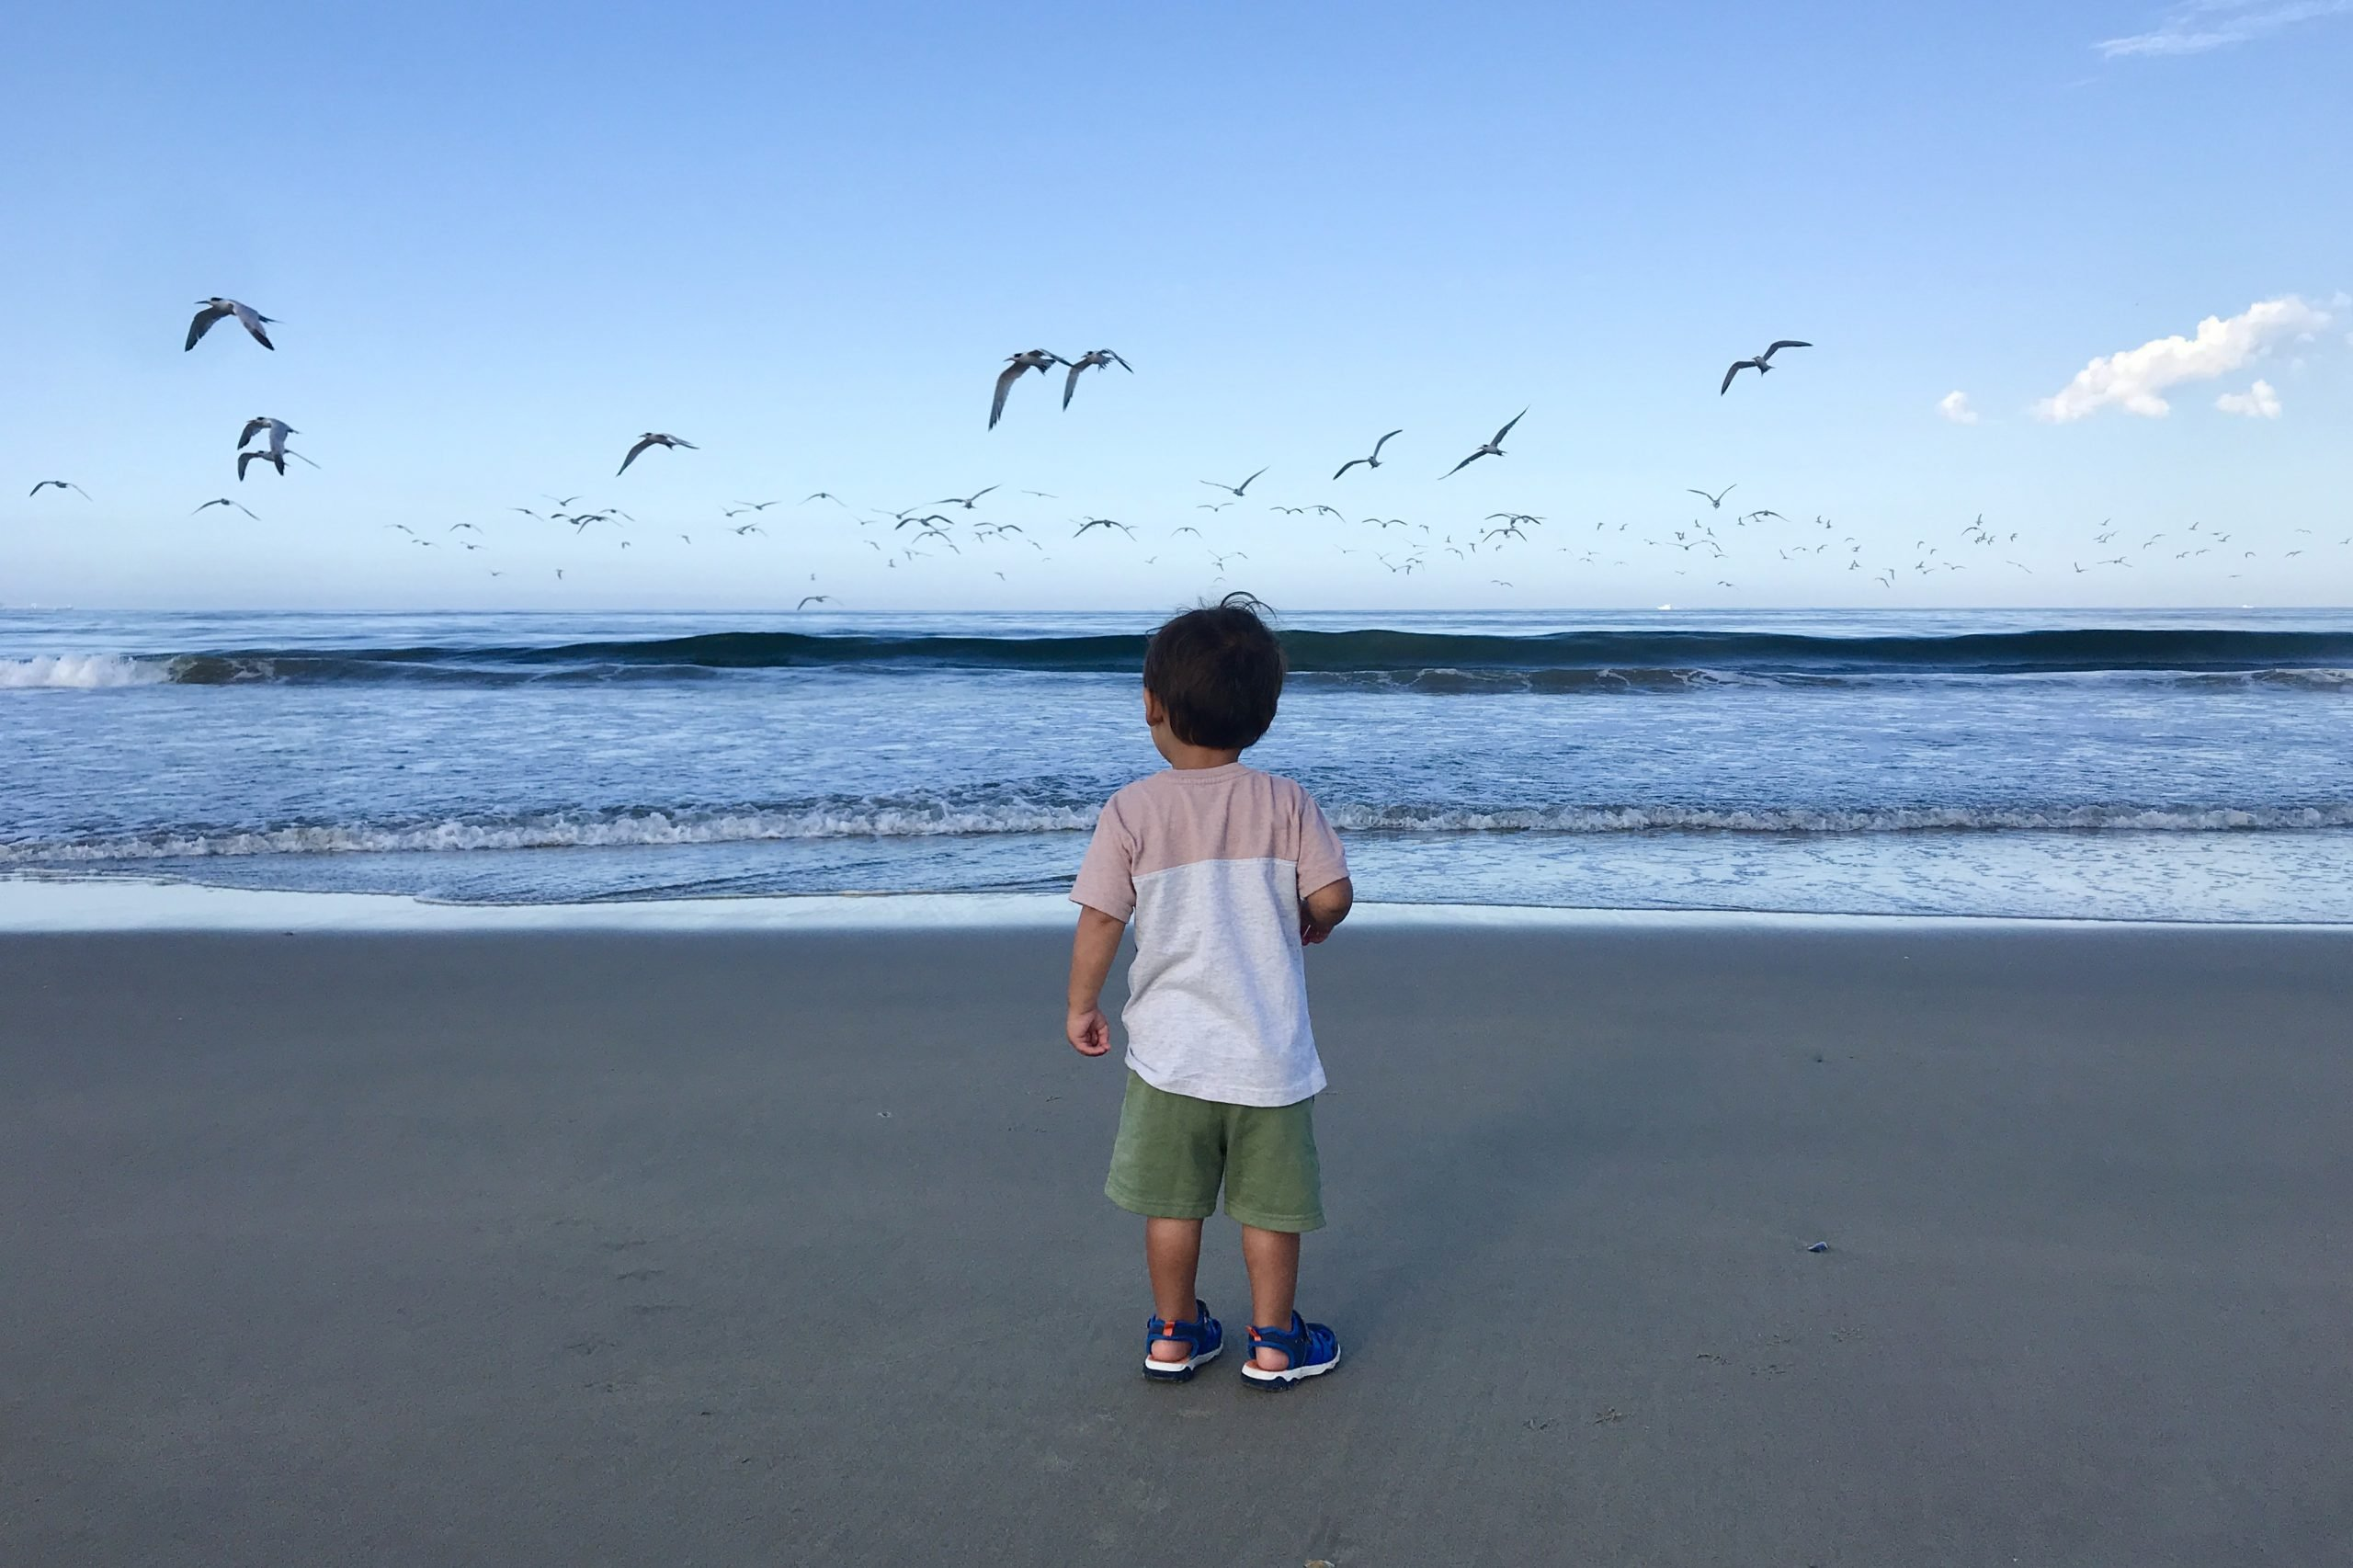 Small Child Watching Seagulls Flying Above Water